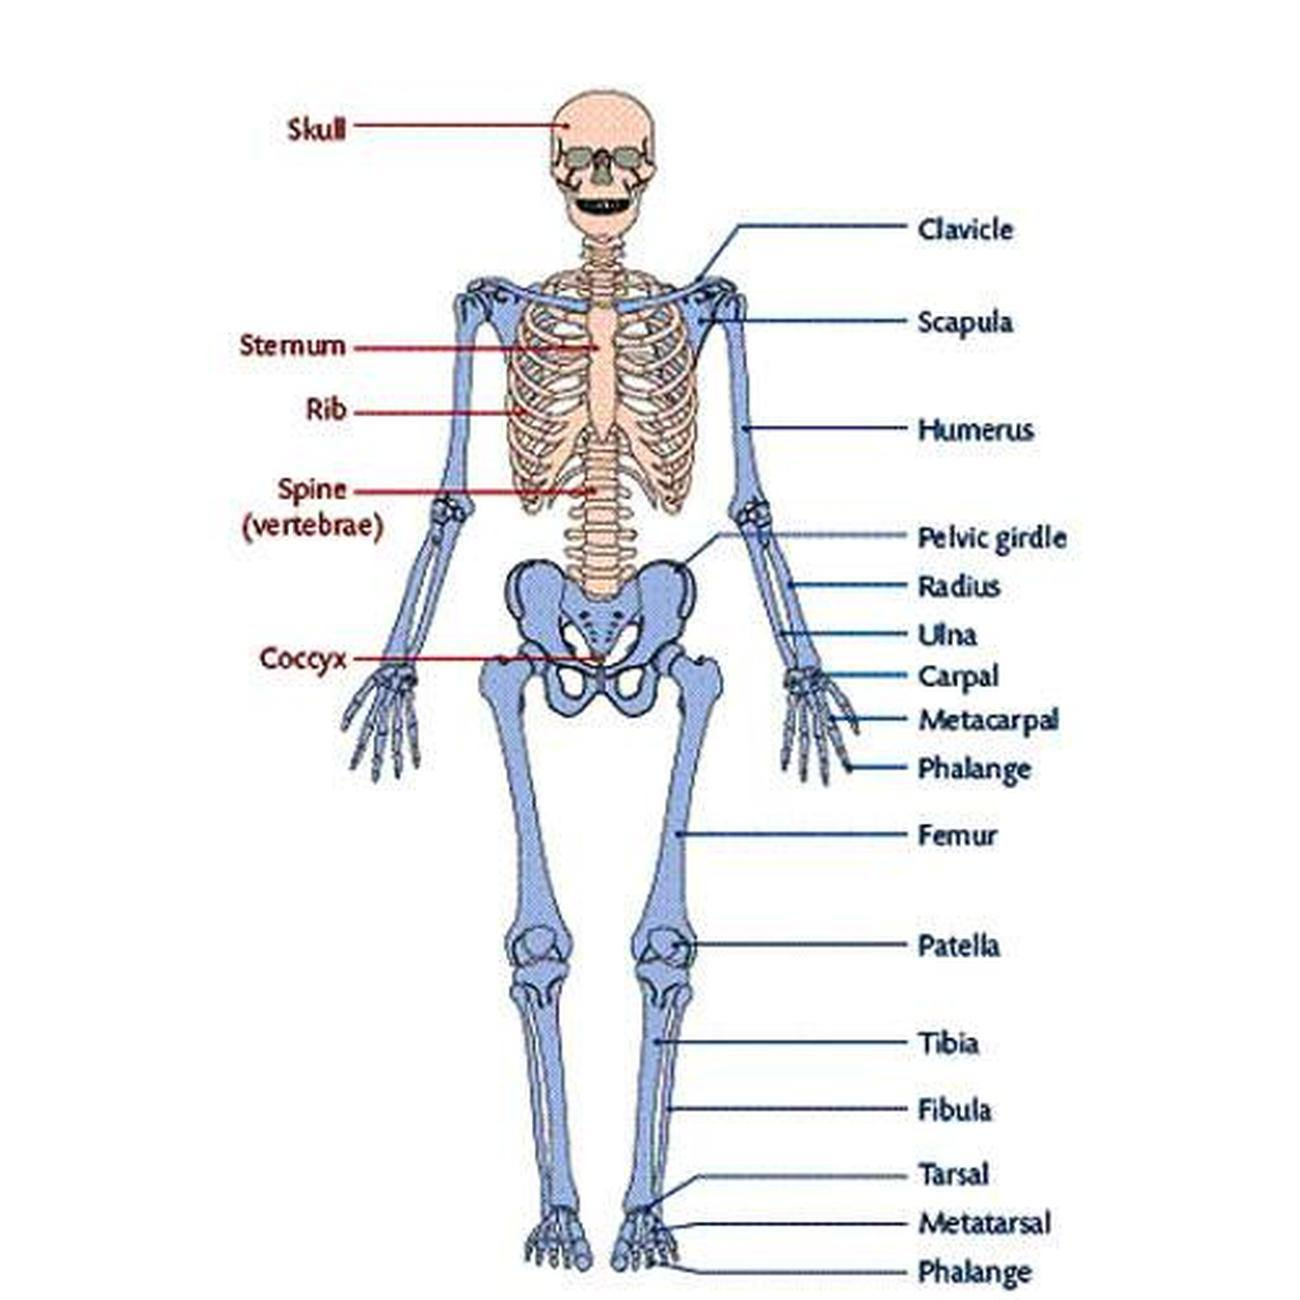 493566440388598723 in addition Maxillary Bone Skeletal Sysyem Module 8 The Skull By Openstax in addition Axial Skeleton in addition Axial Skeleton Labeling Worksheet also 5682. on skull labeling exercises